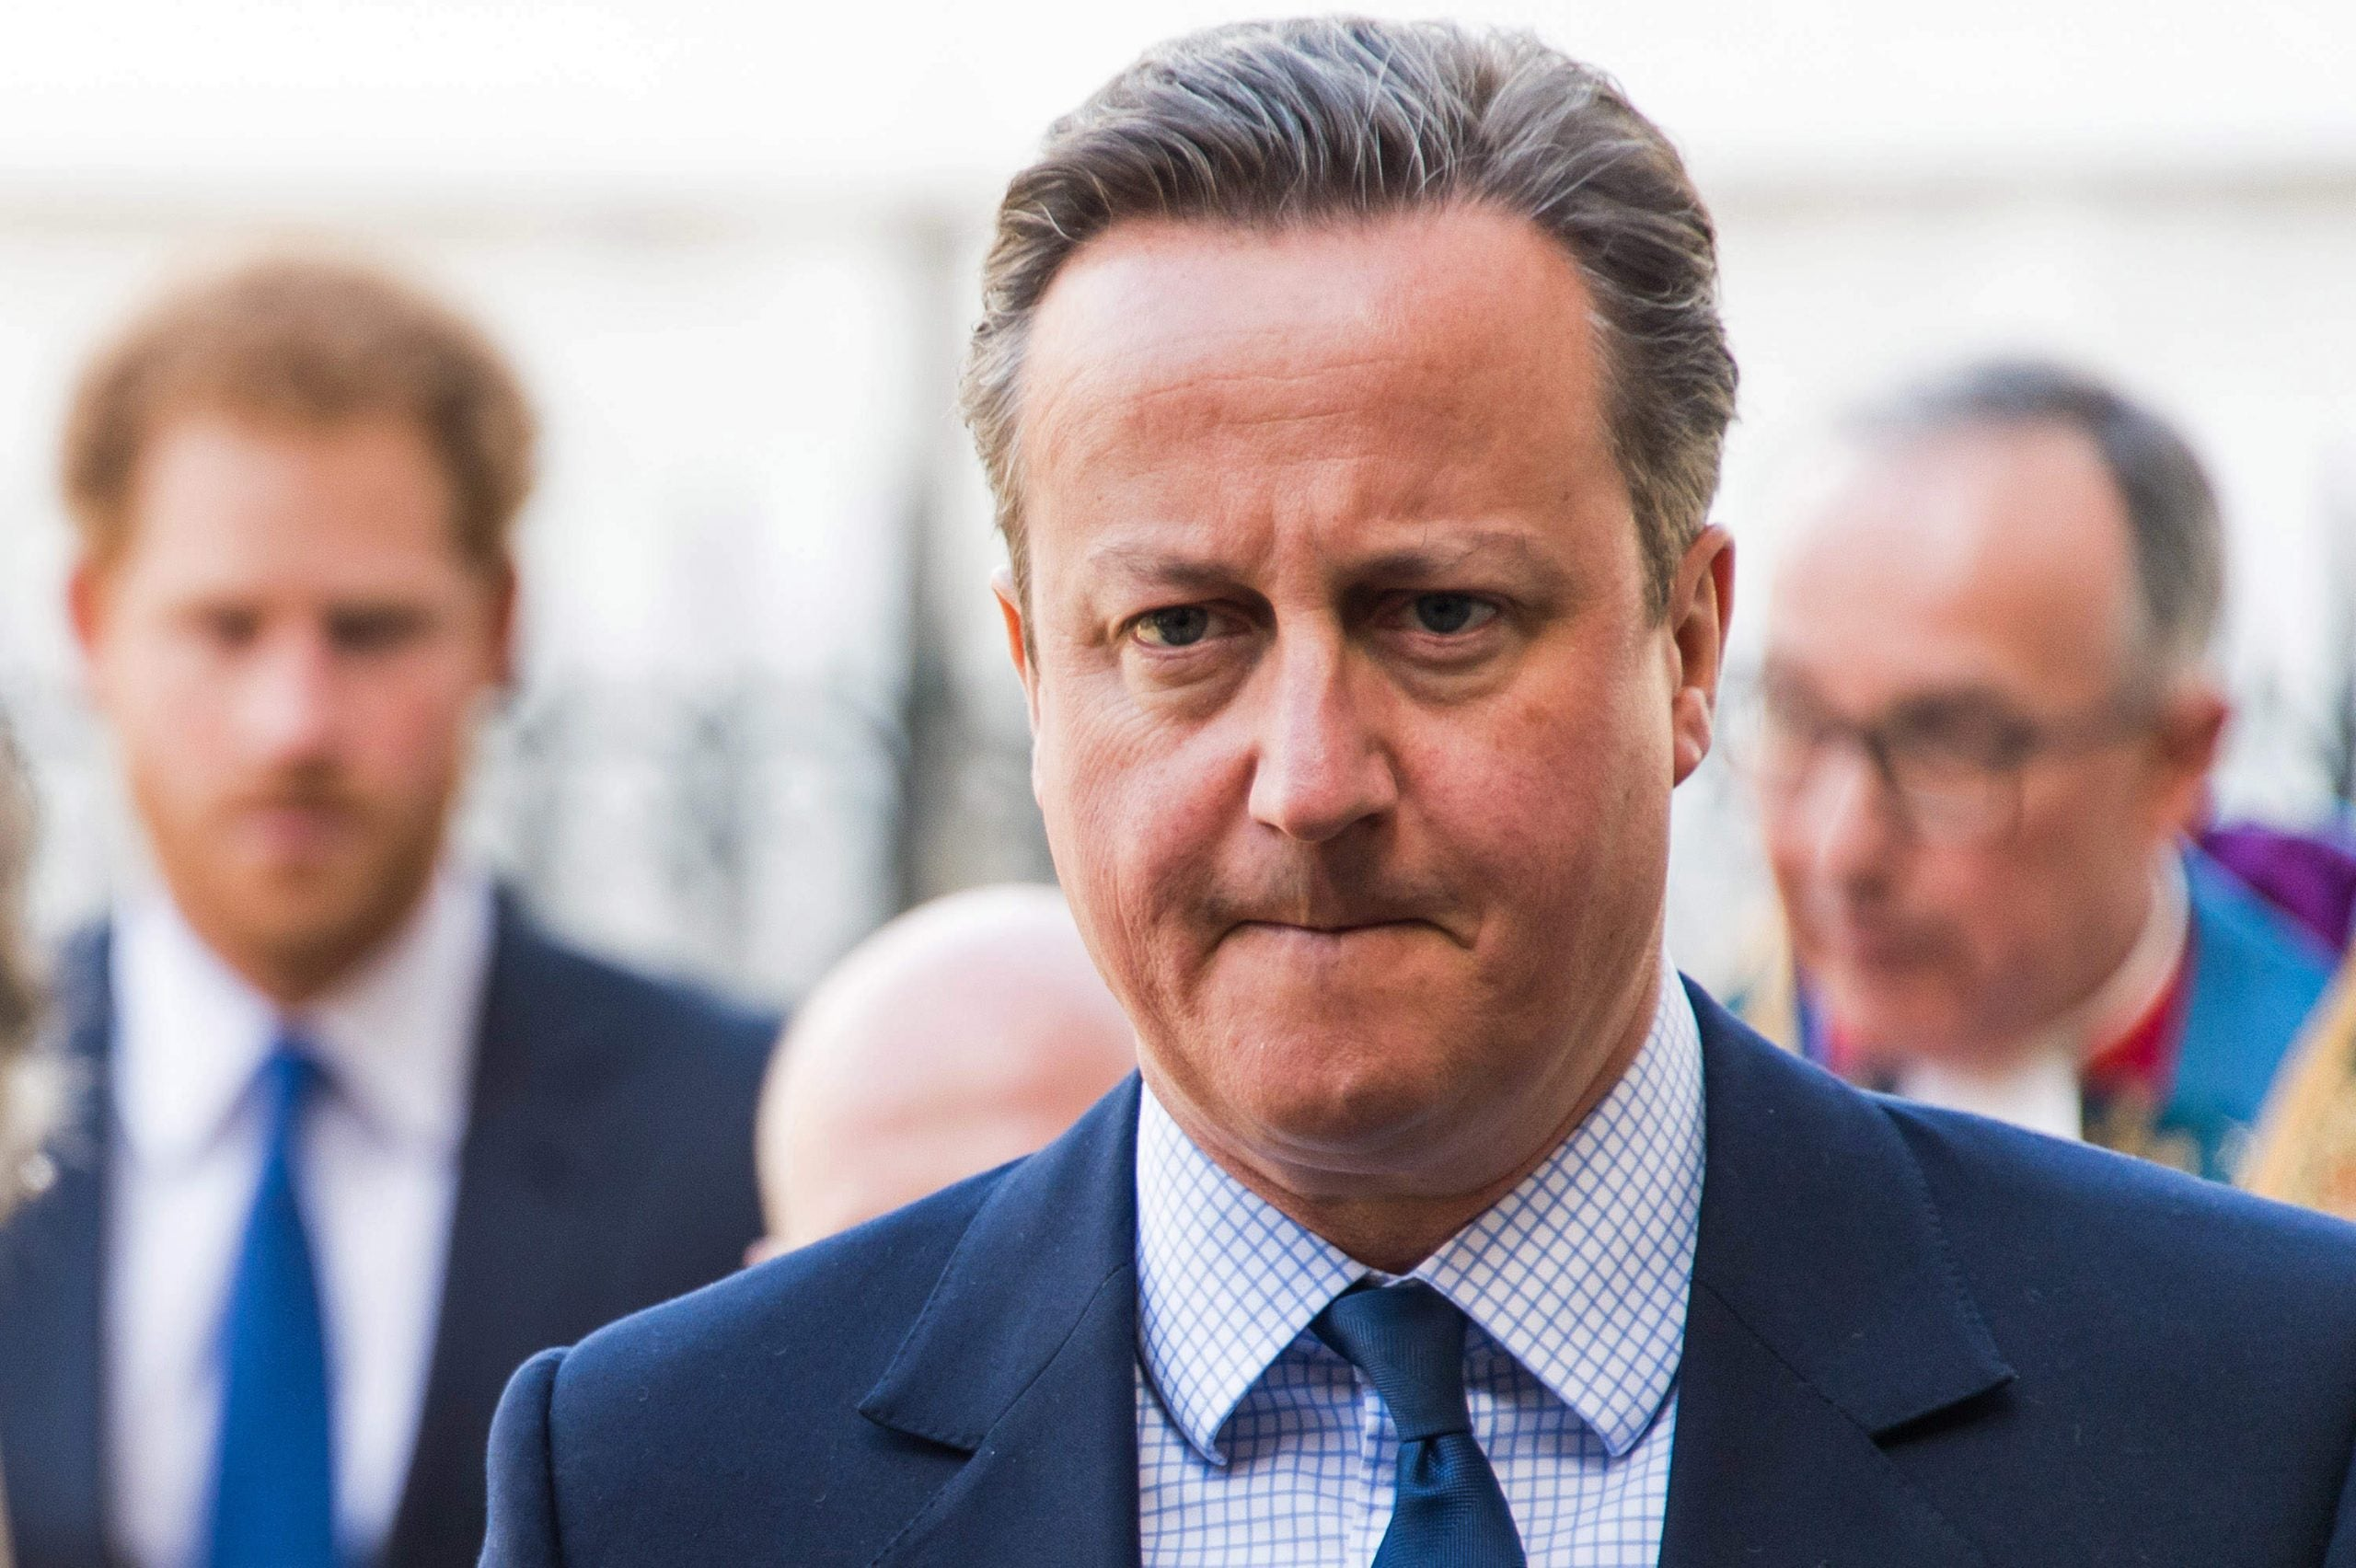 As David Cameron's powers wane, he will struggle to secure the legacy he wants